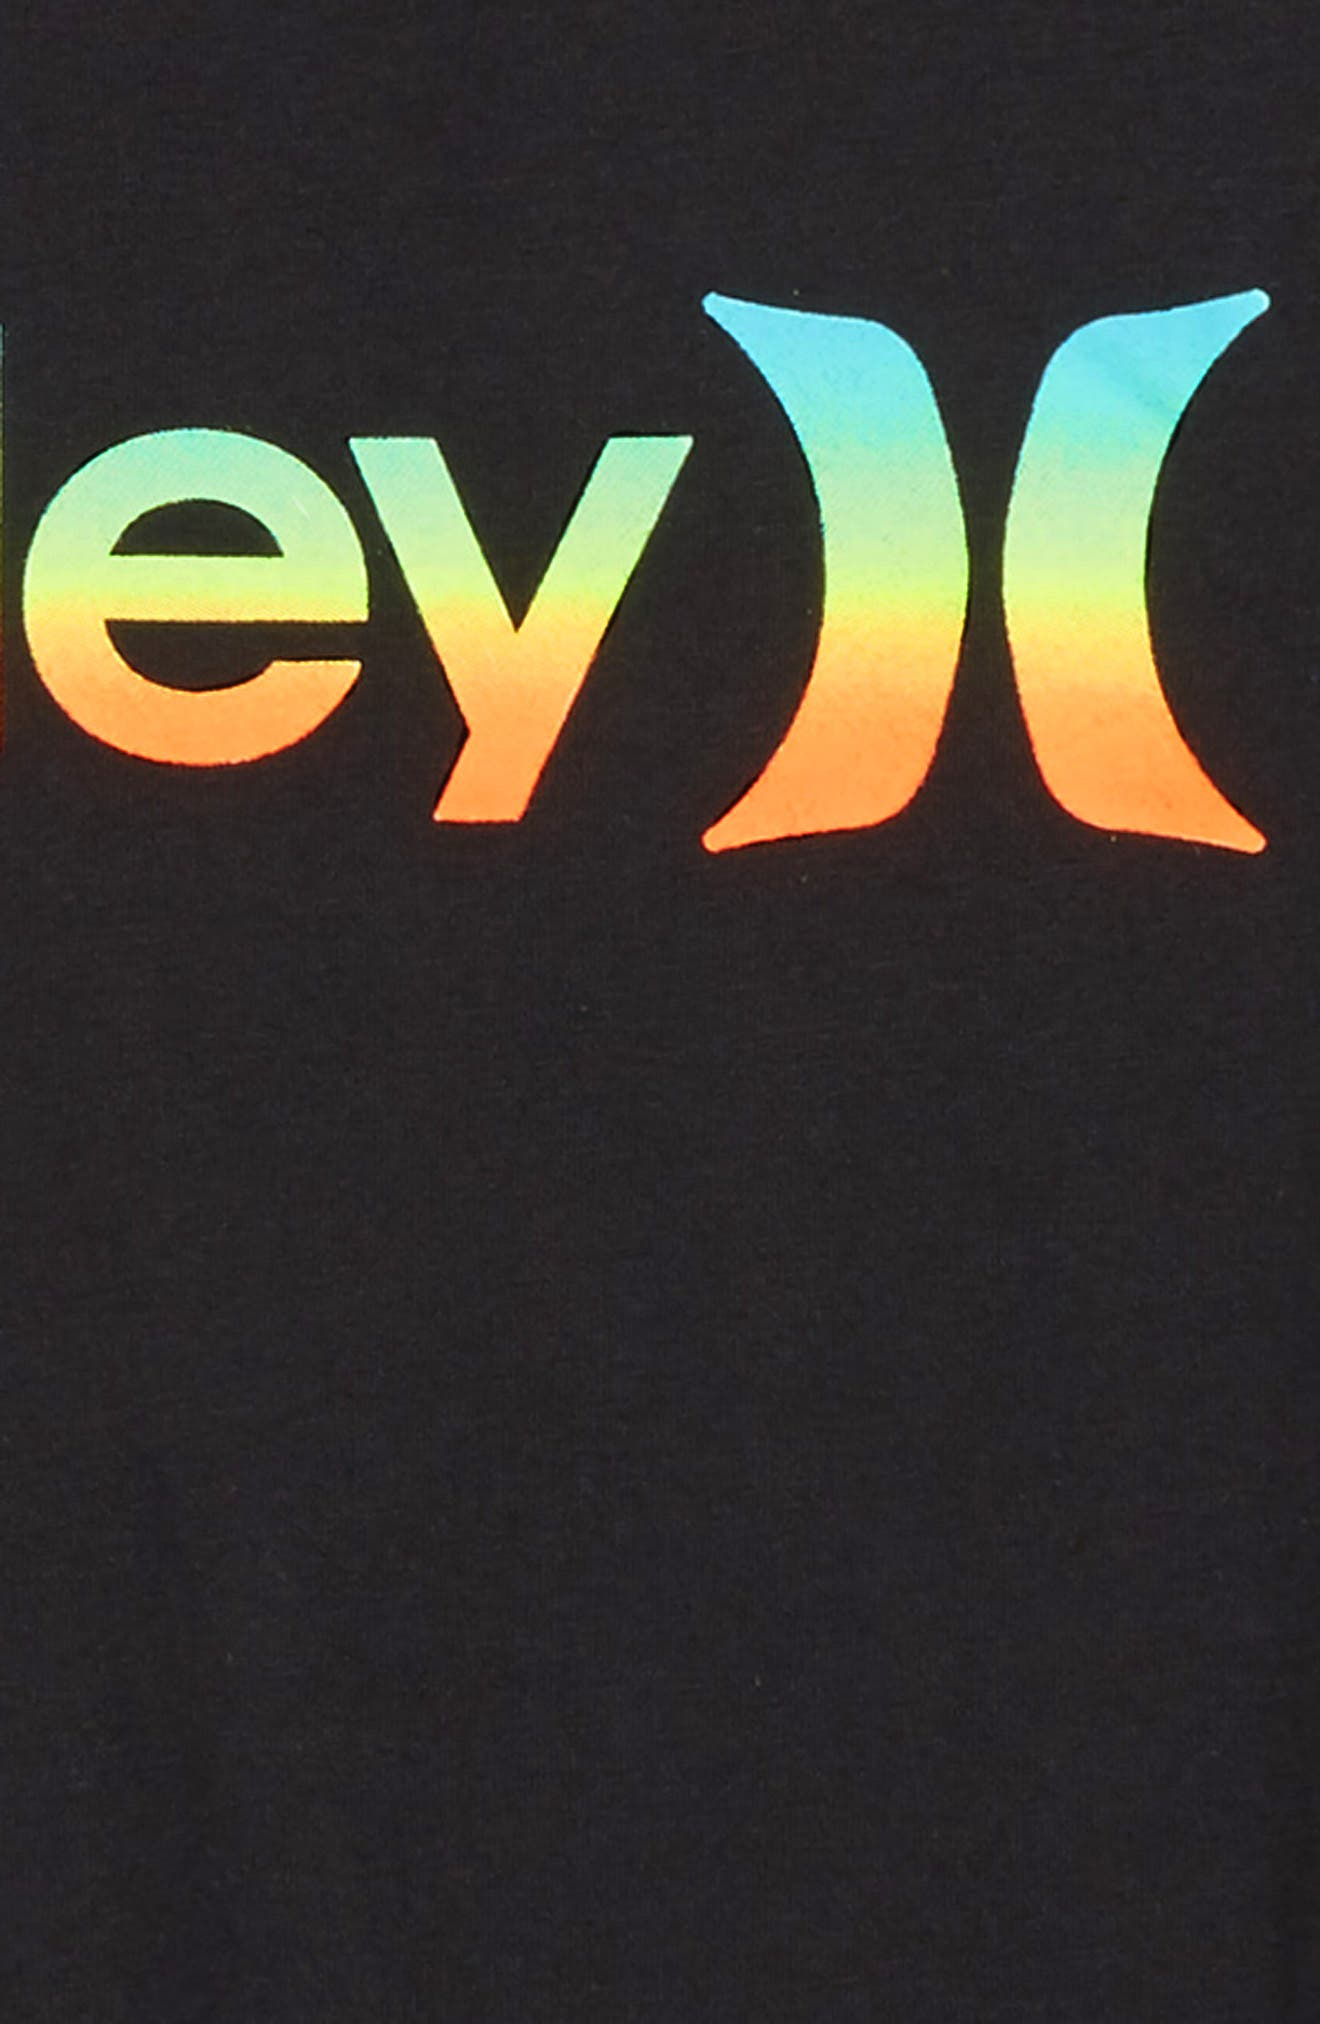 One & Only Gradient T-Shirt,                             Alternate thumbnail 2, color,                             003